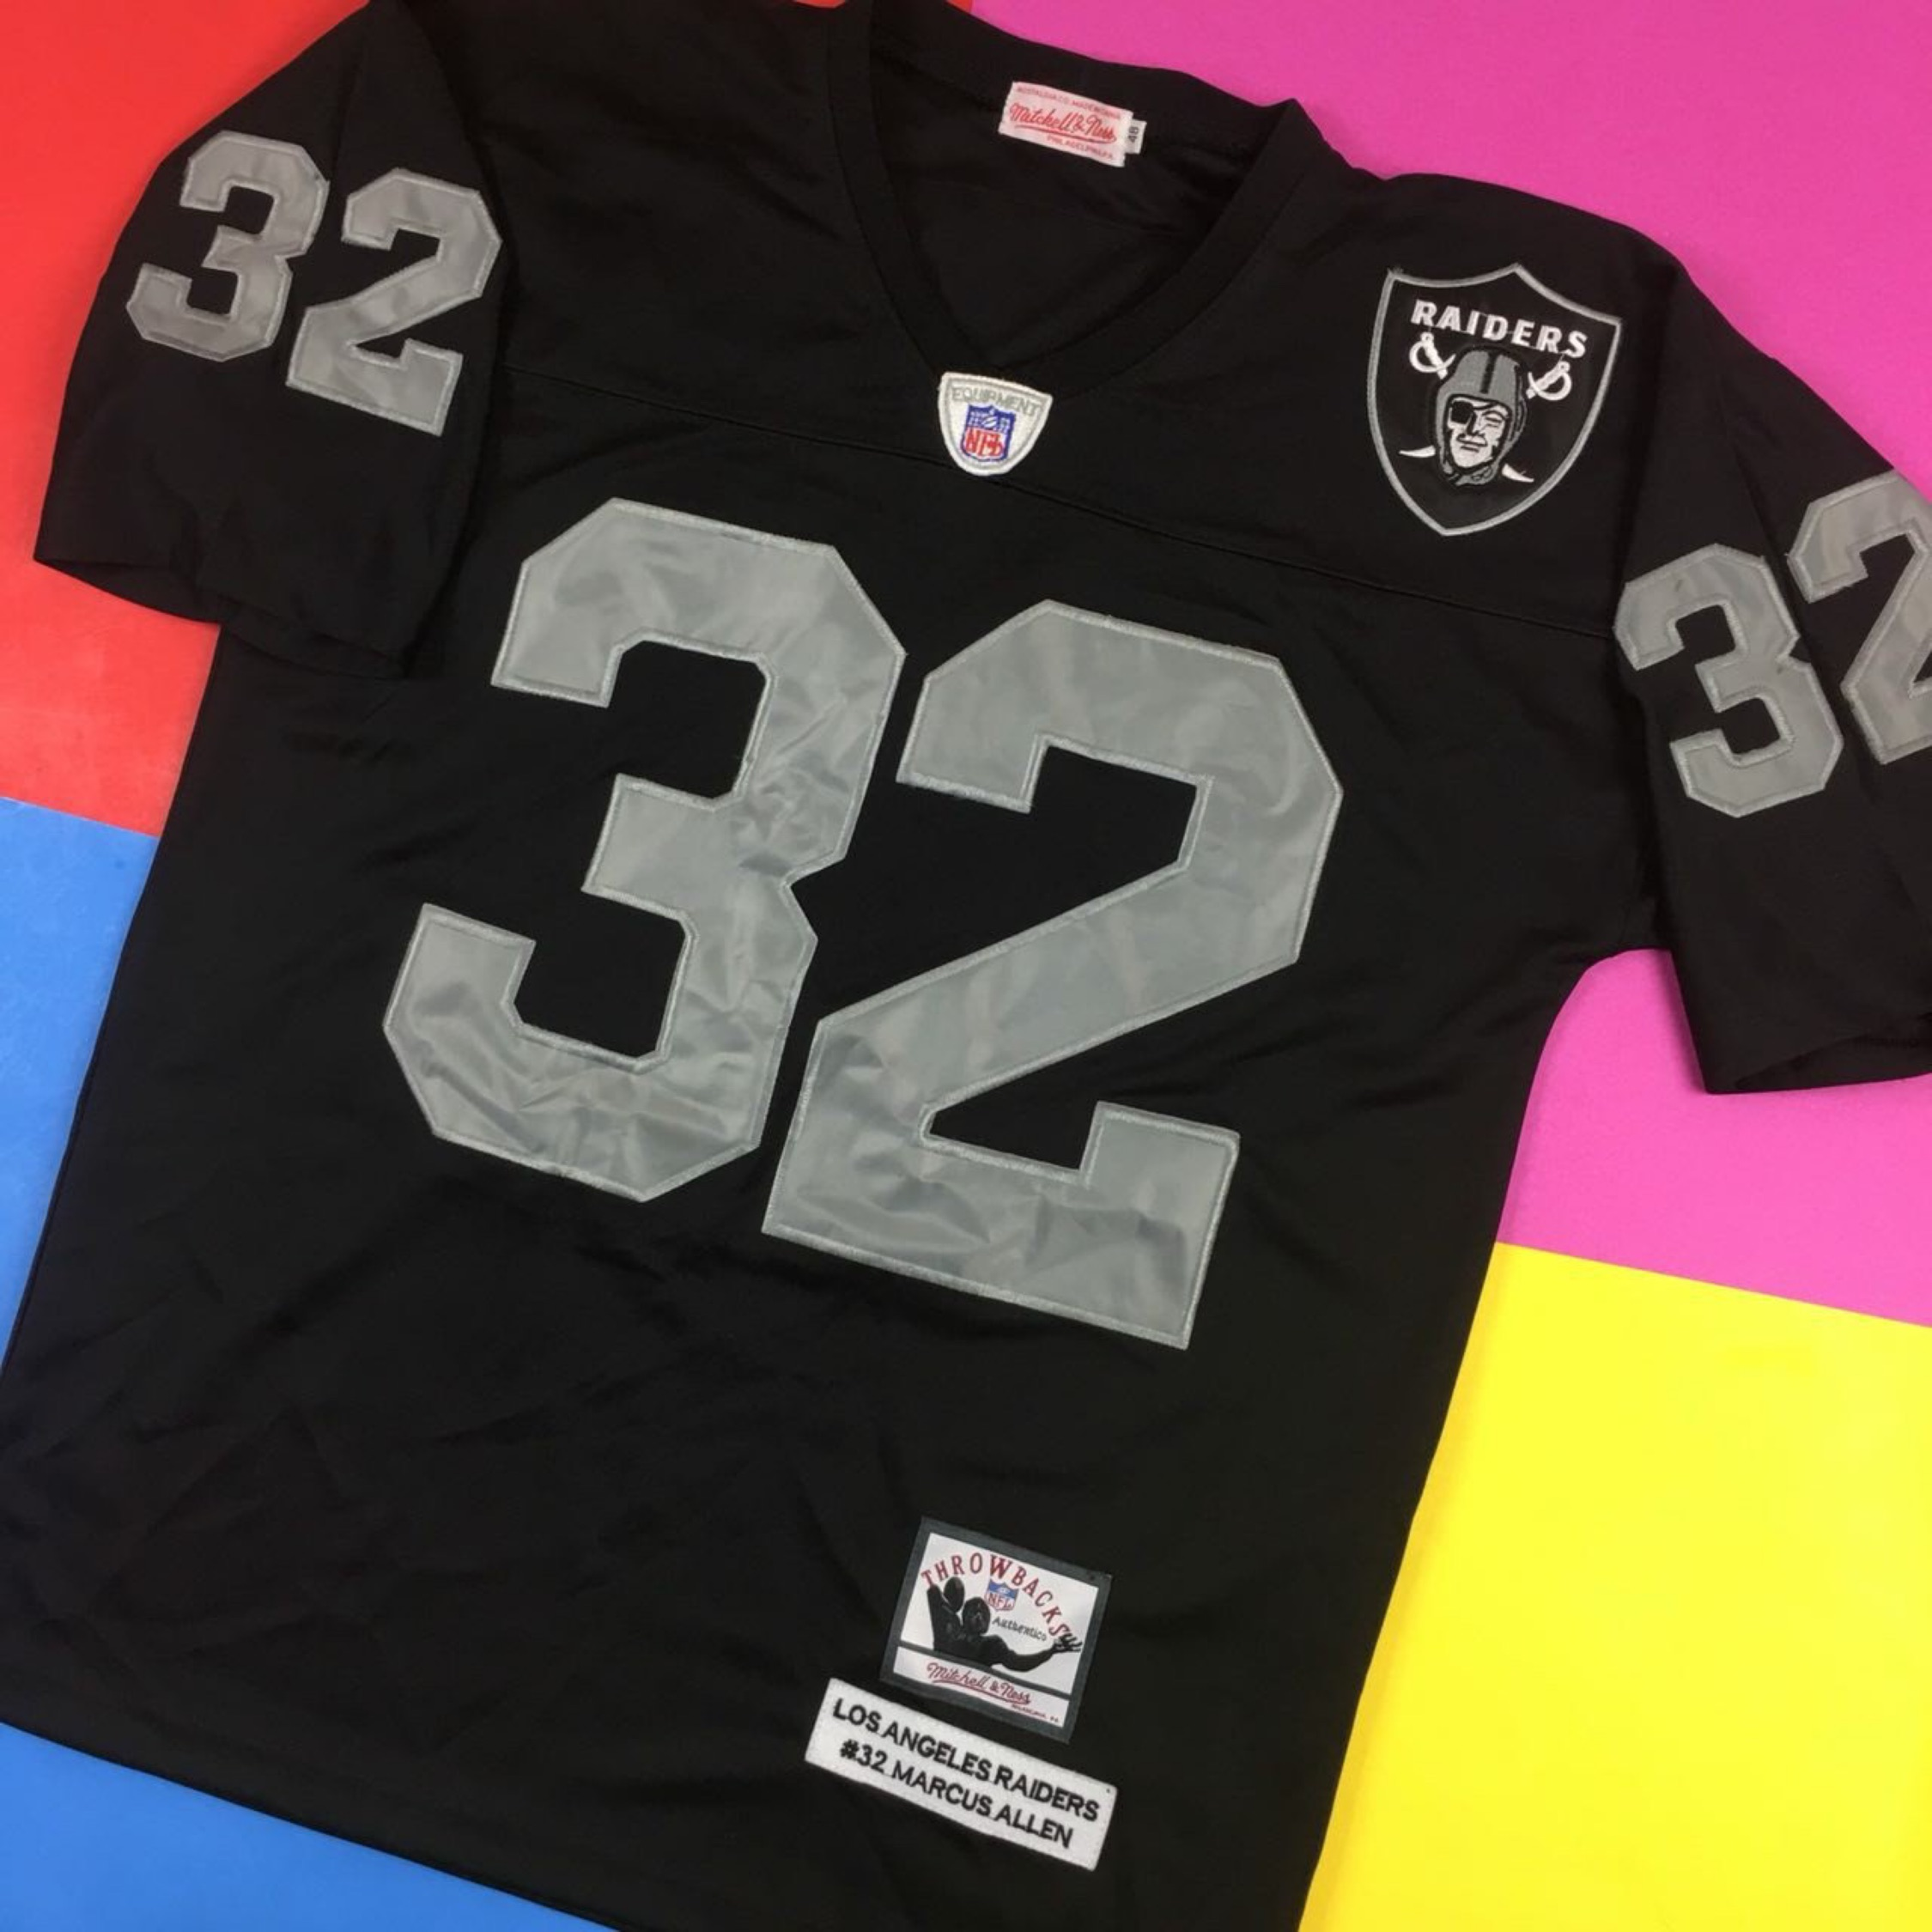 online store eefd3 480a9 Vintage 90S La Raiders Mitchell & Ness Jersey